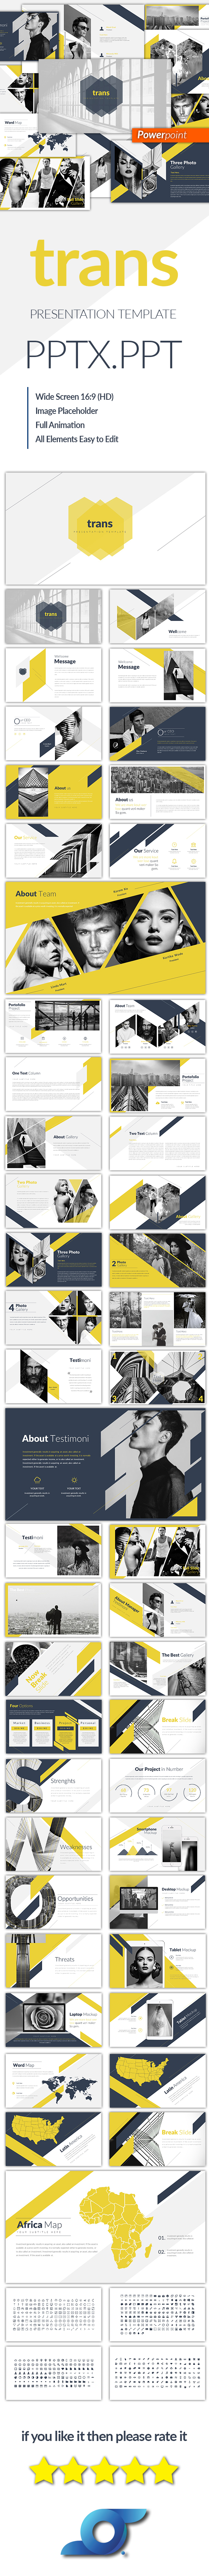 Trans Creative Powerpoint Templates - Abstract PowerPoint Templates